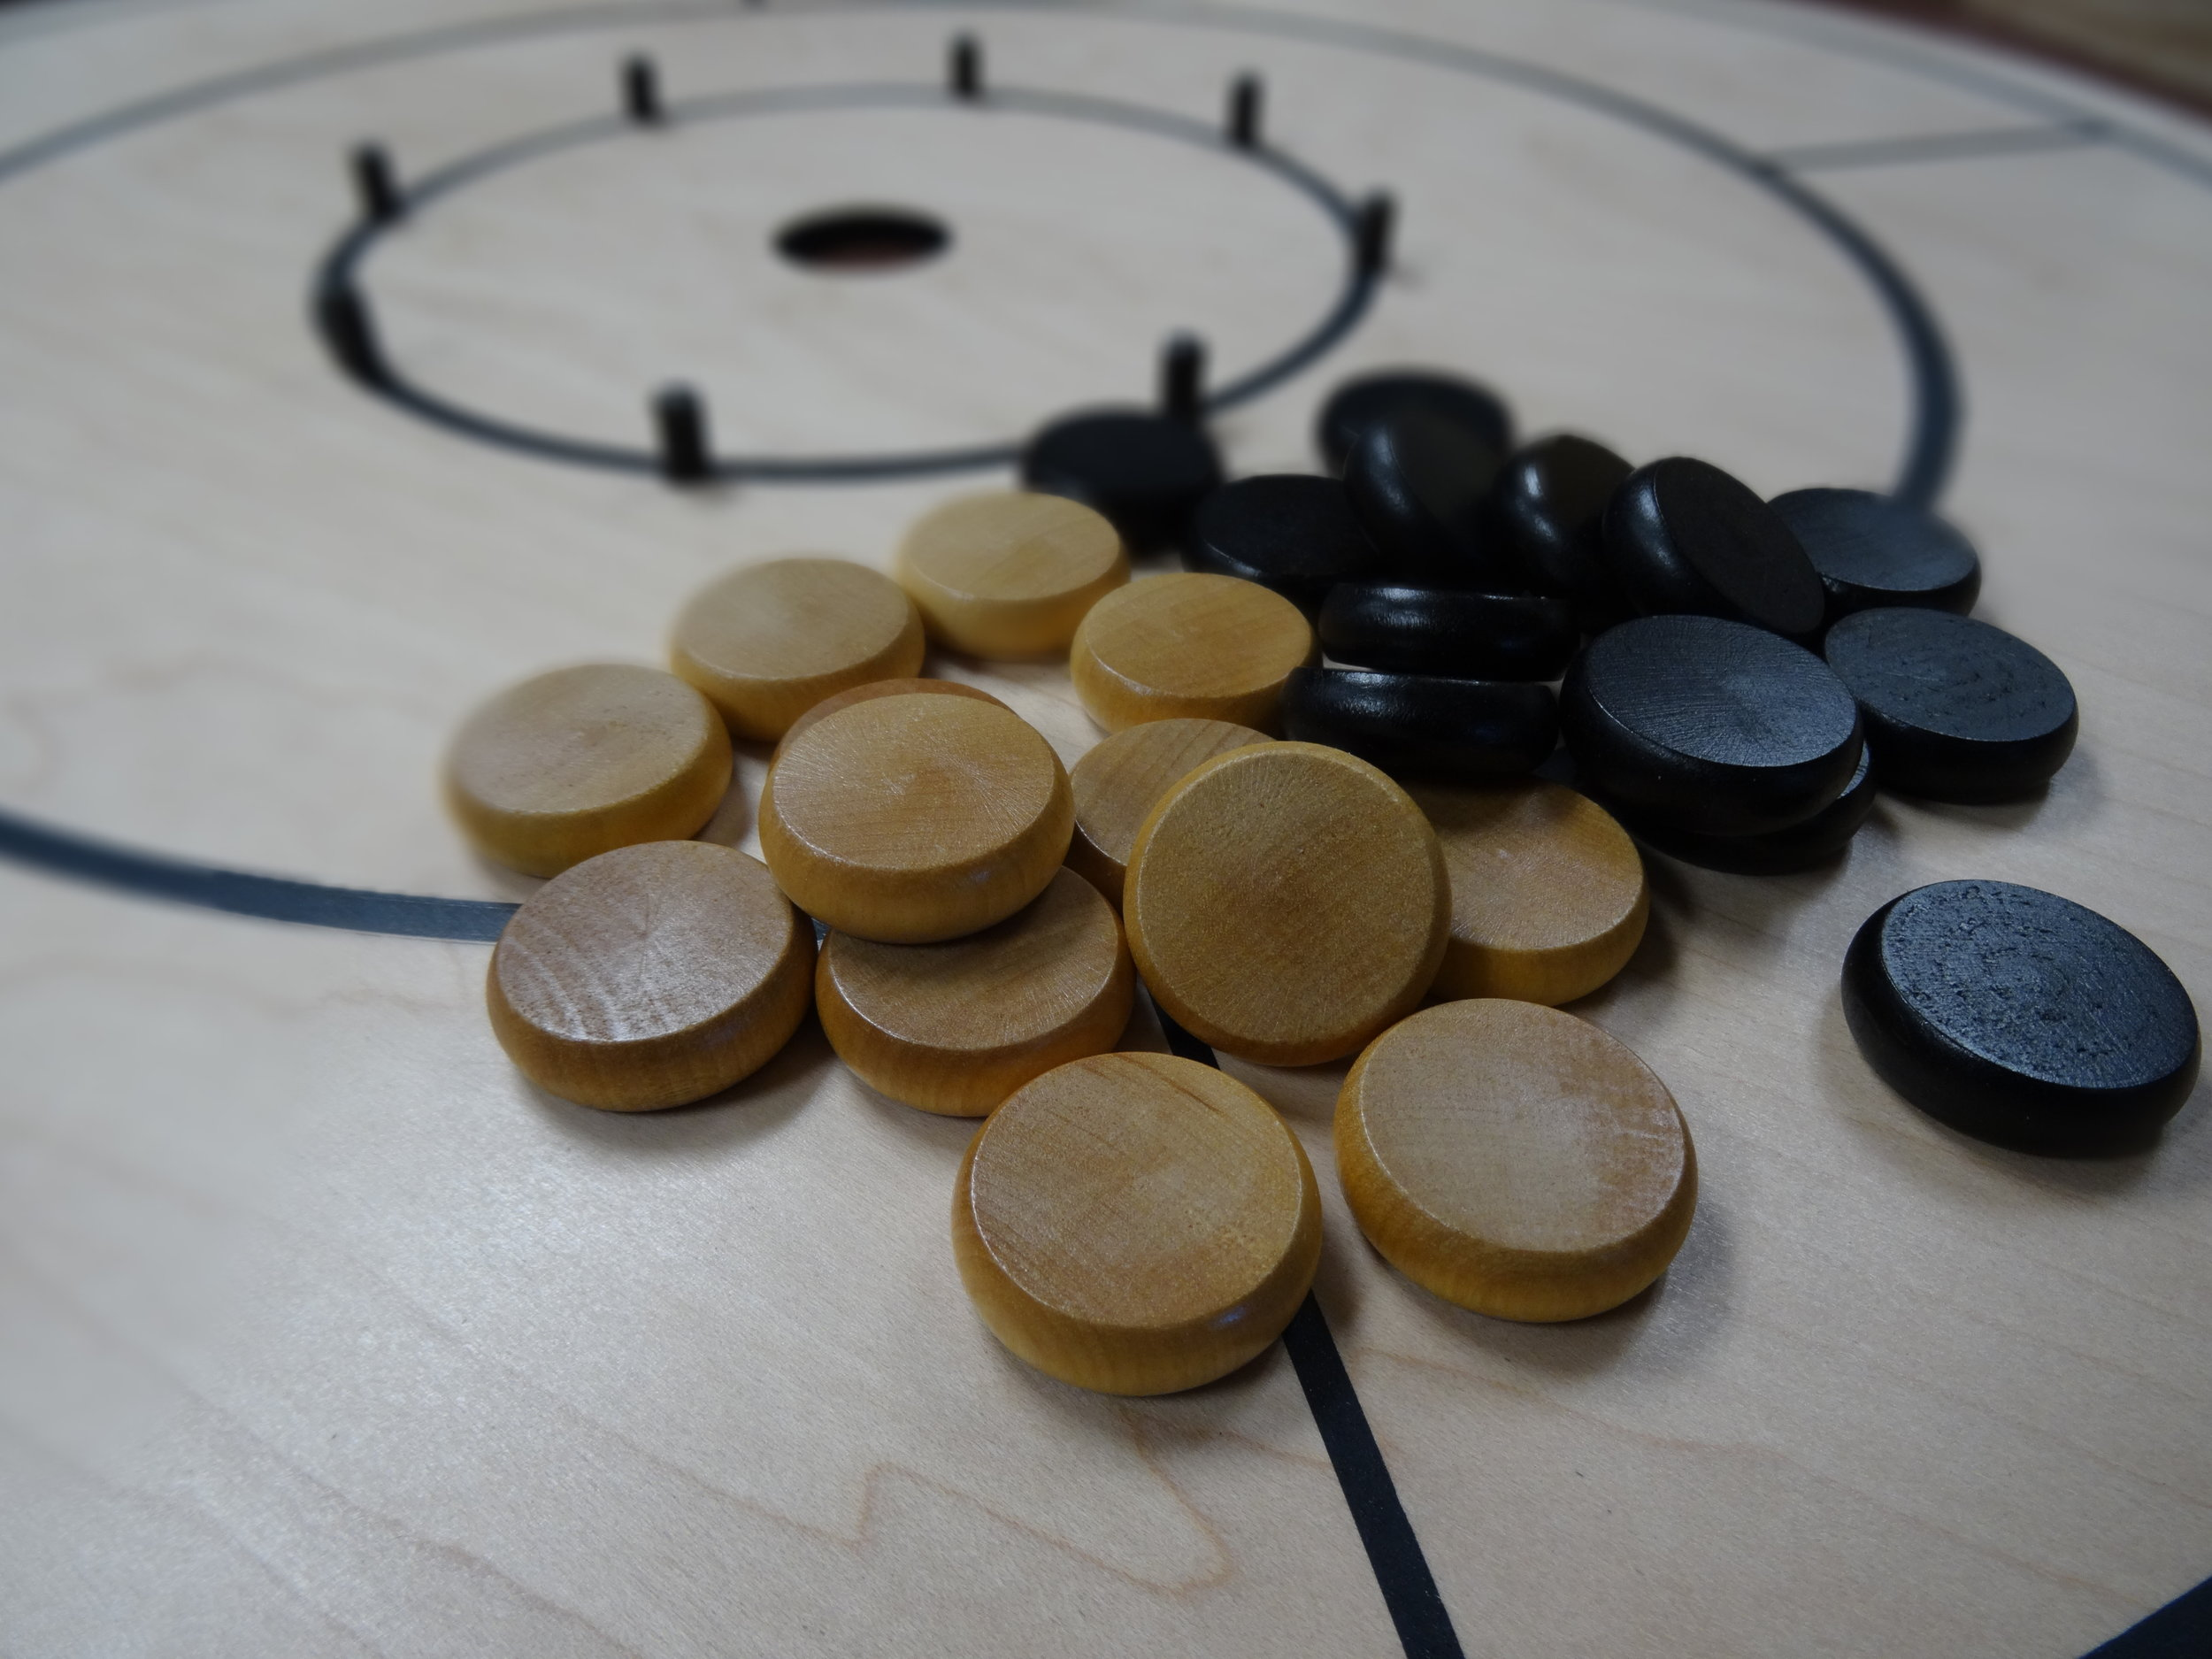 Learn To Play… - If you would like to learn how to play prior to purchasing you can download our Crokinole game rules right here!